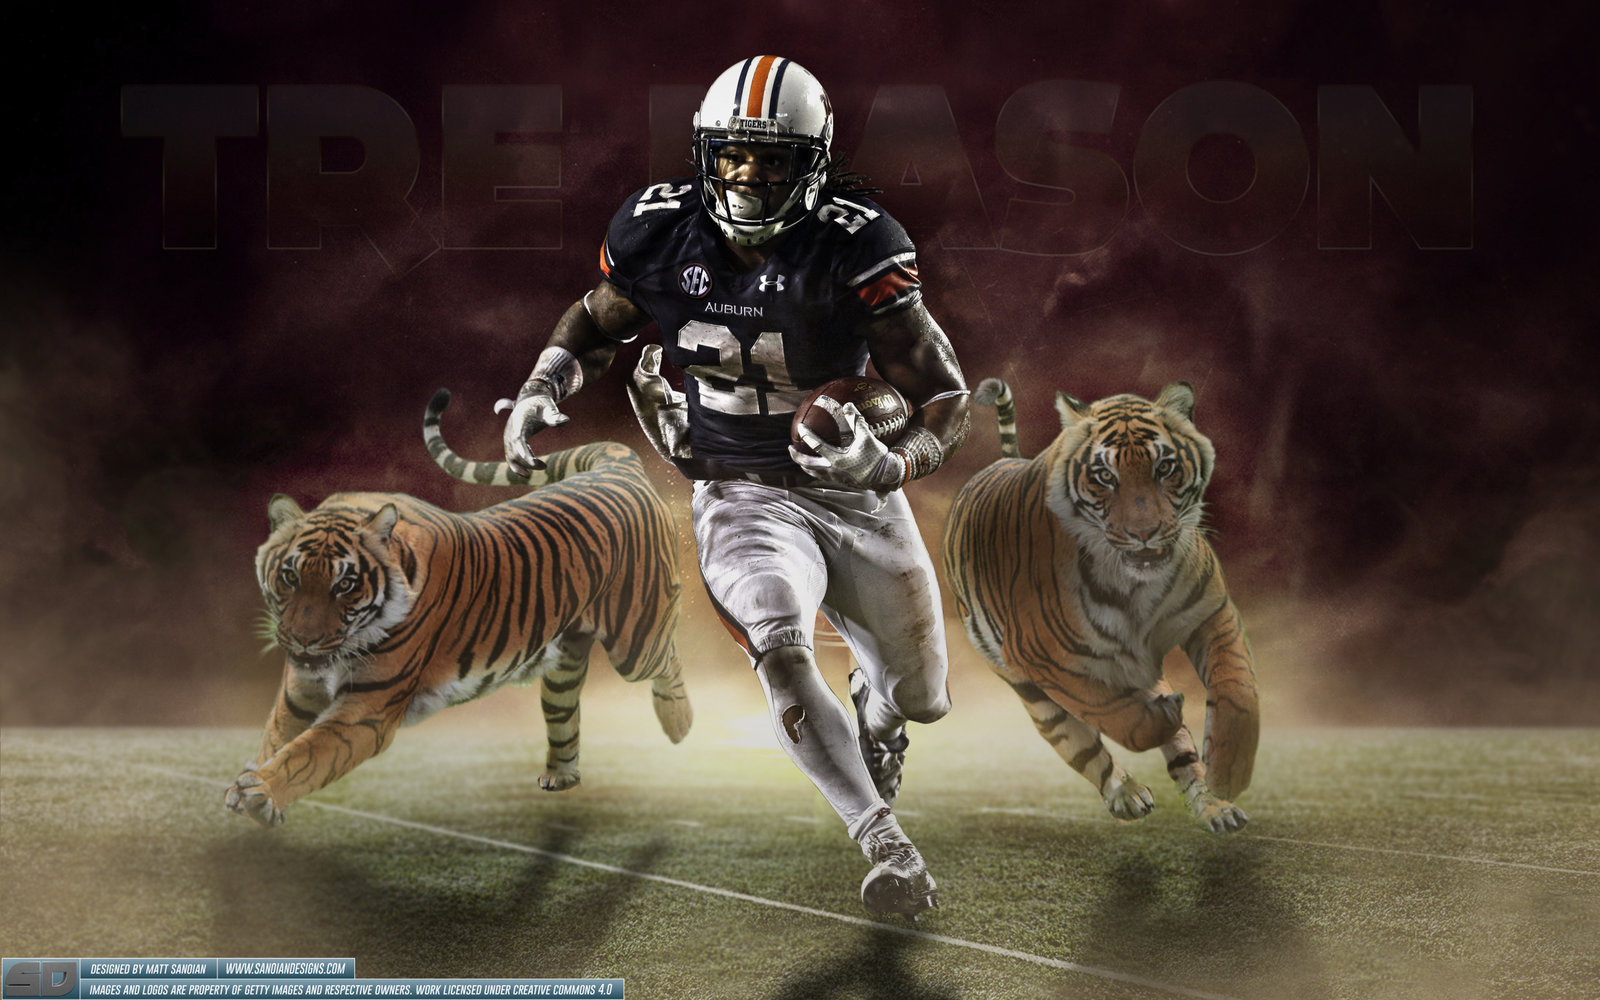 auburn tigers wallpaper hd wallpapersafari